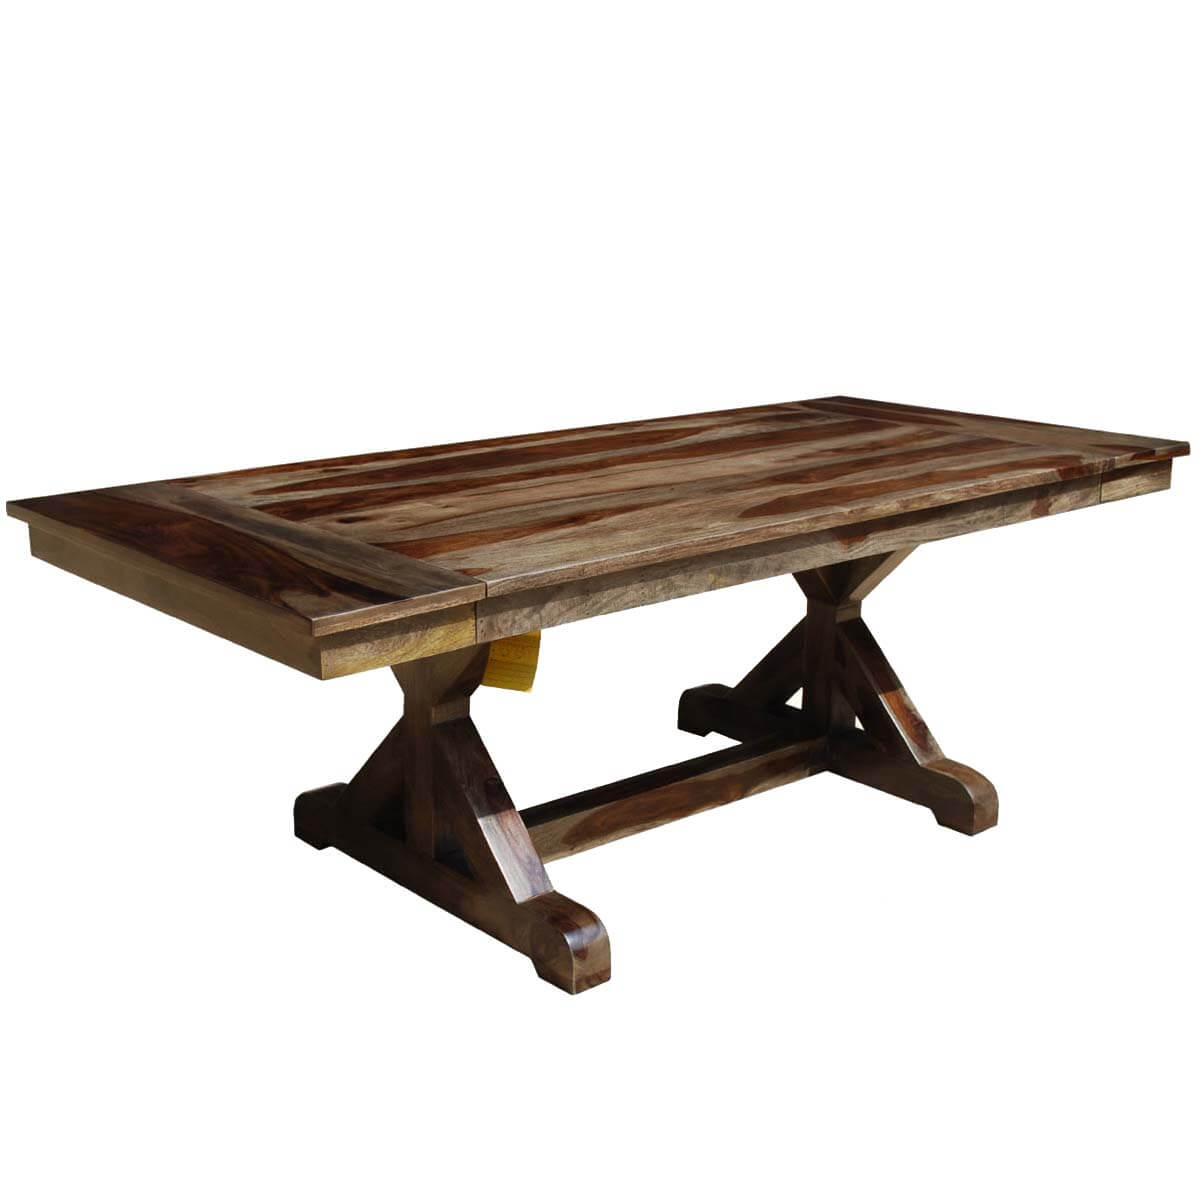 Mckay x base solid wood rustic dining table w extension Rustic wood dining table